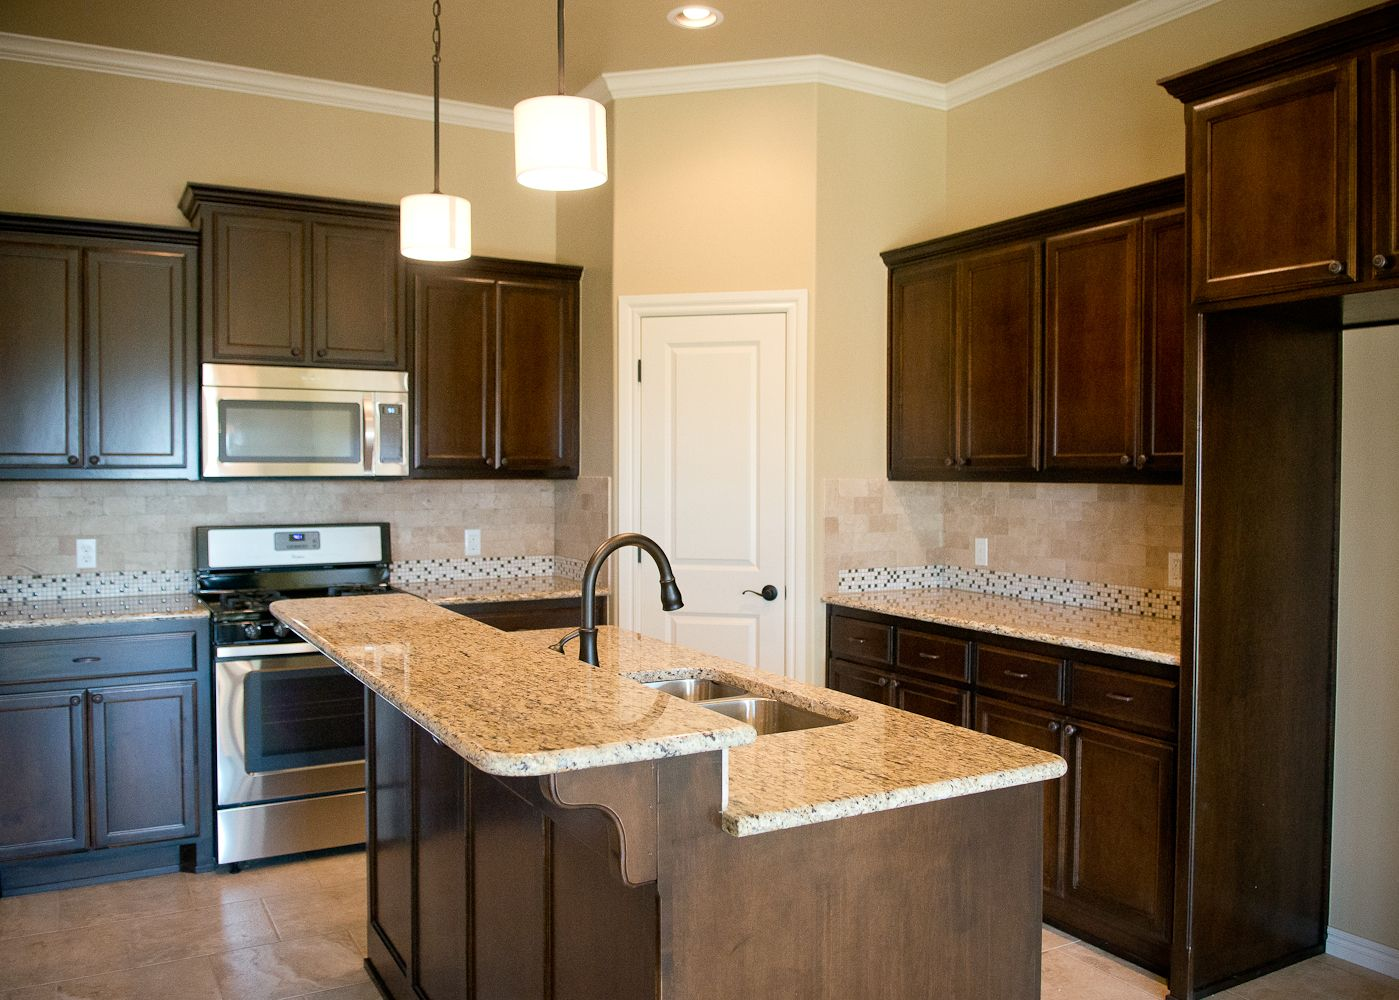 Beacon Homes Kitchen Warm Stained Cabinets Tumbled Travertine Backsplash Oil Rubbed Bronze